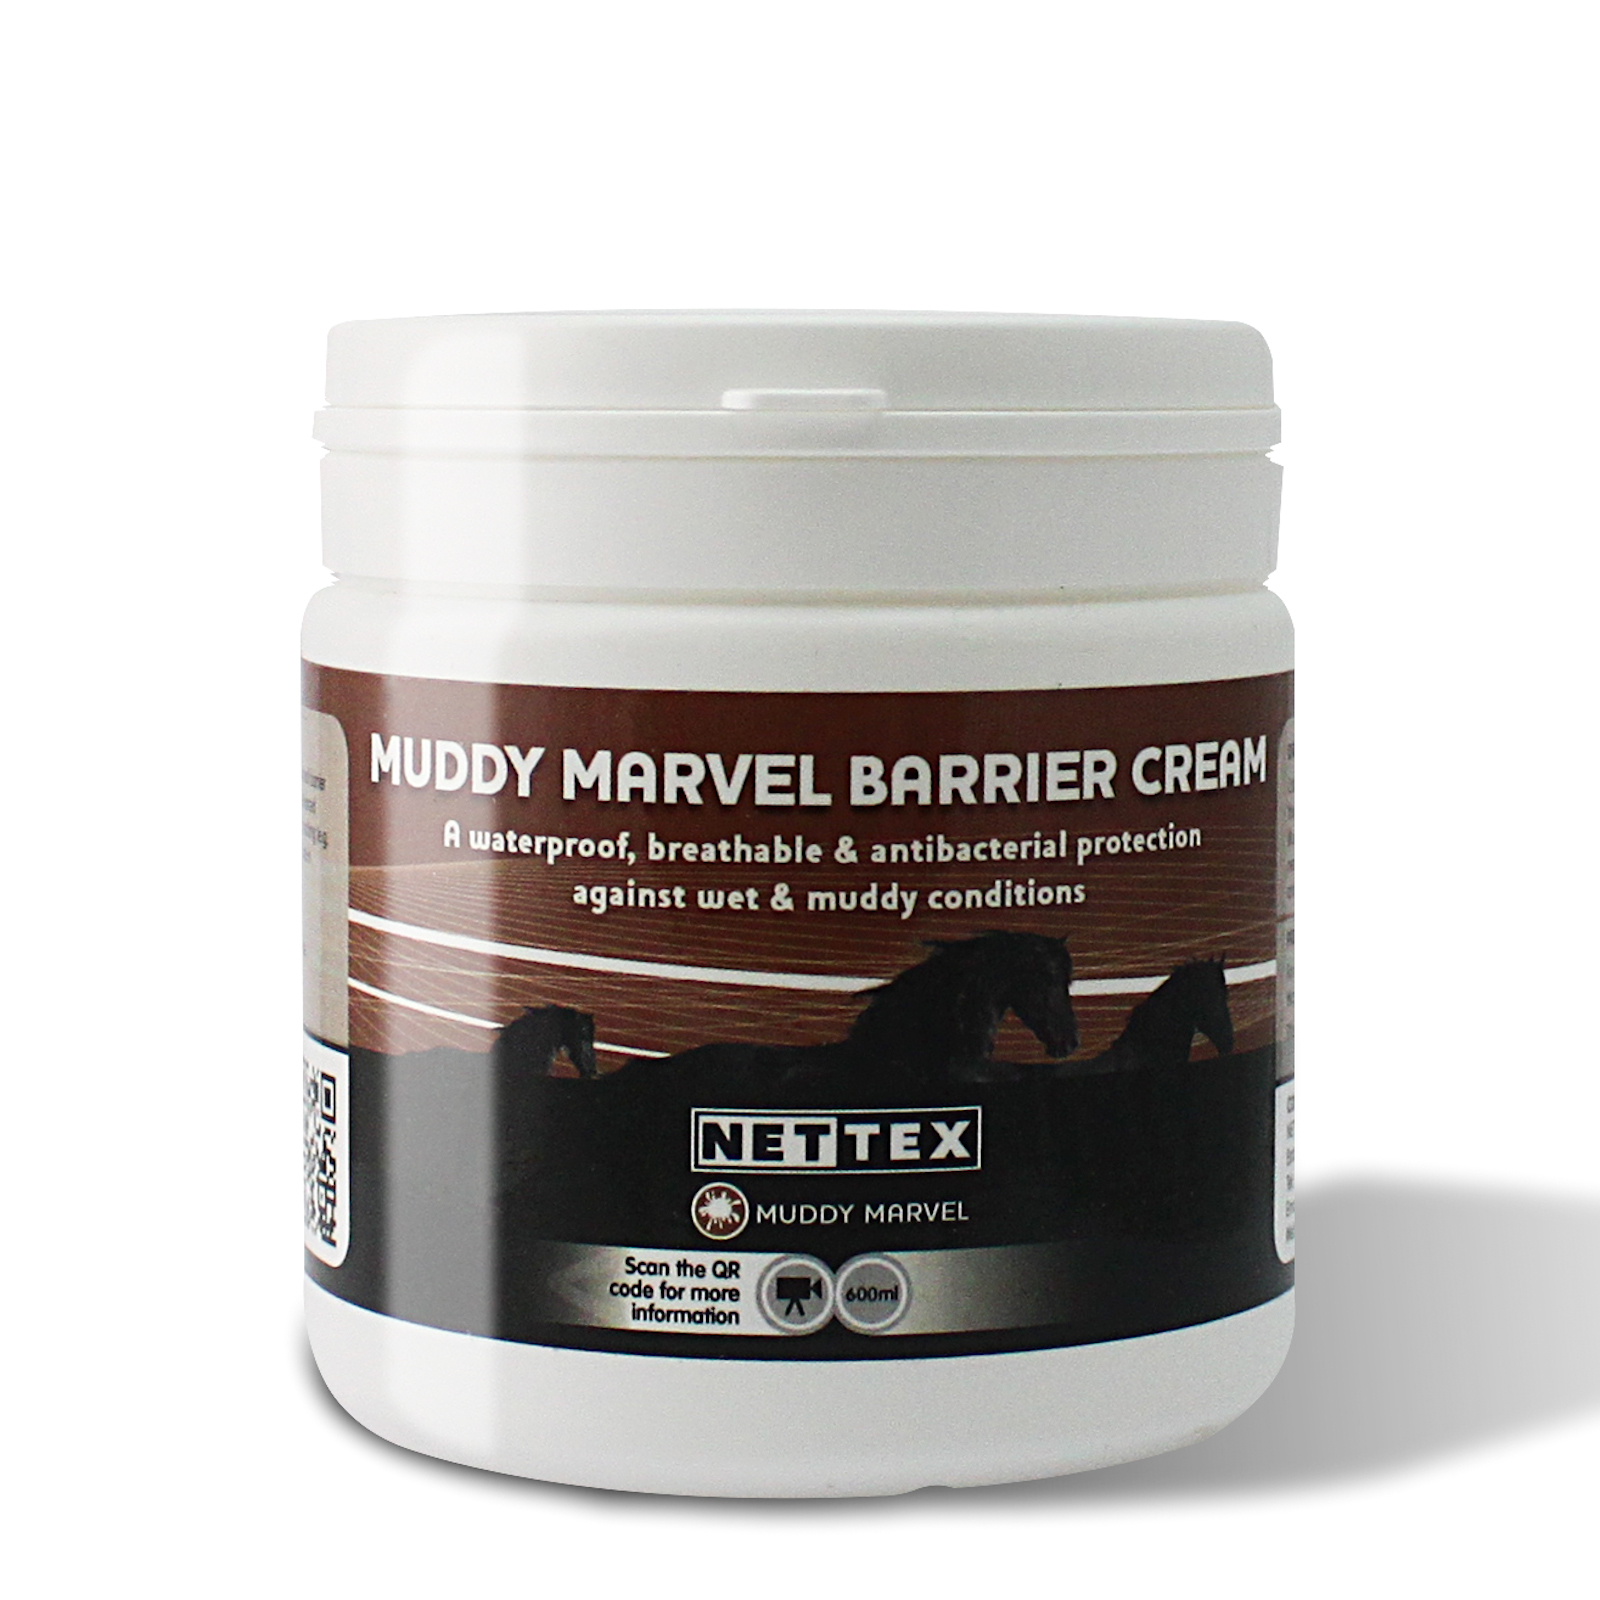 Nettex Muddy Marvel Barrier Cream 600 ml